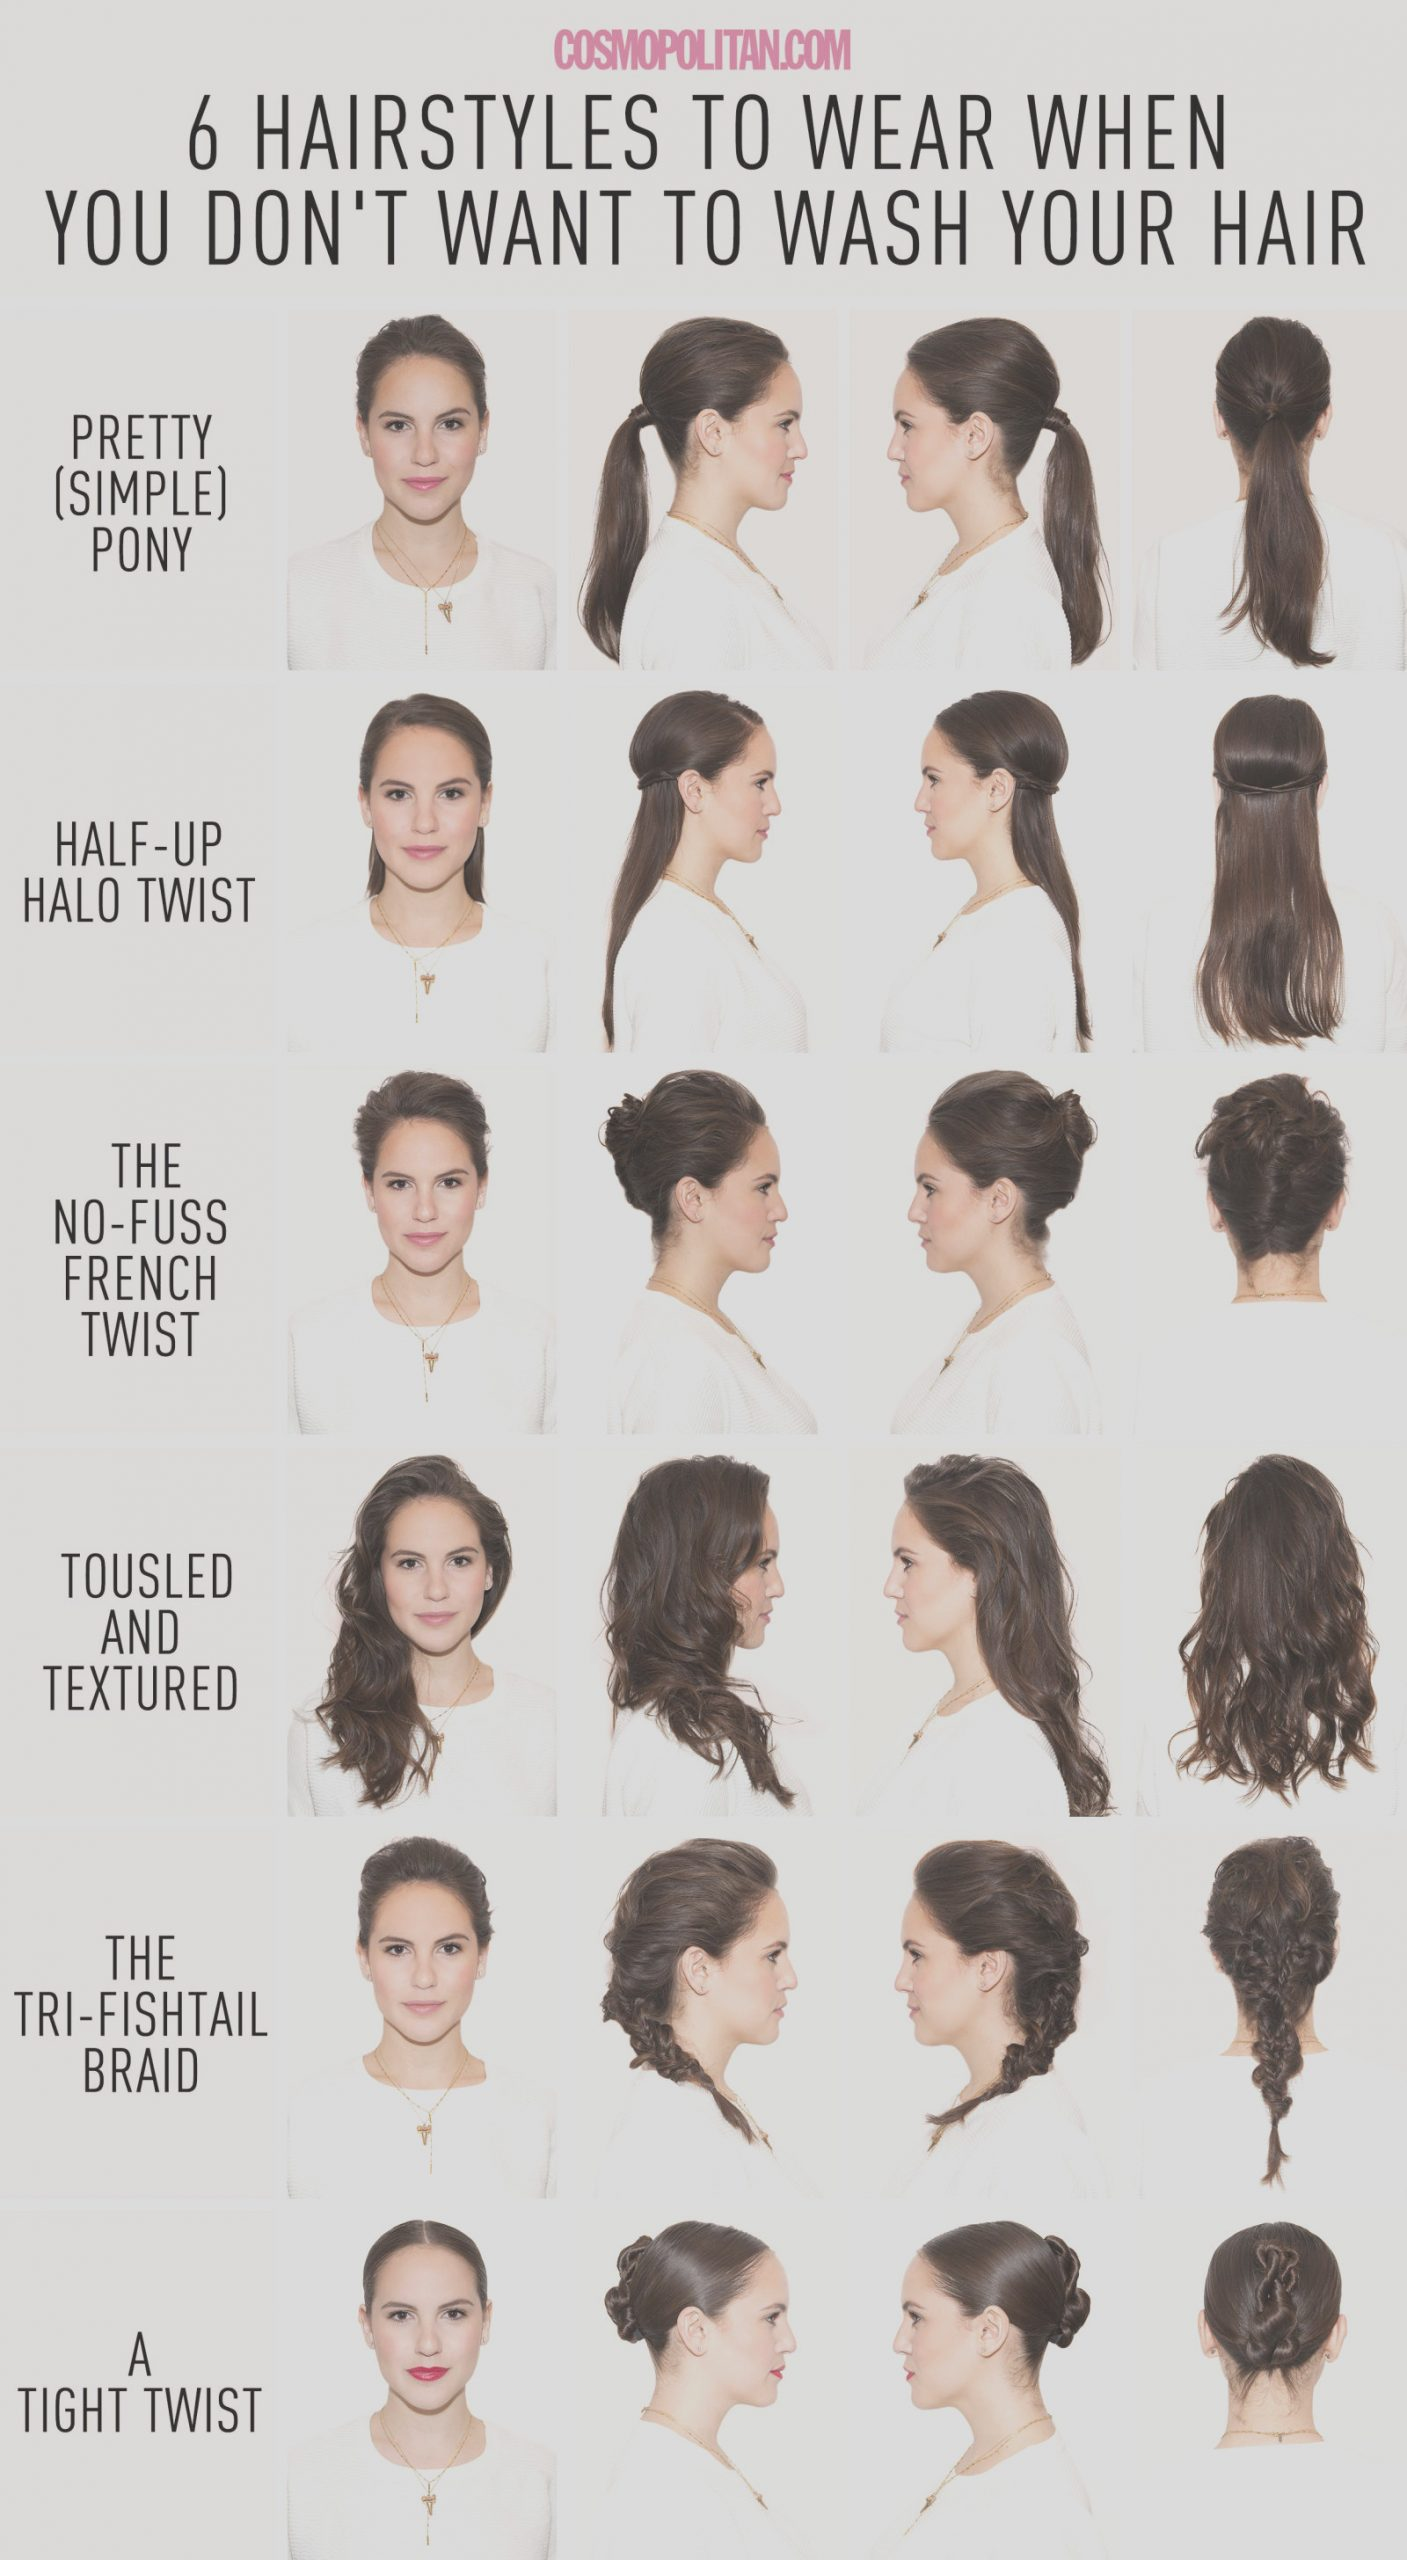 hairstyles when you dont want to wash your hair